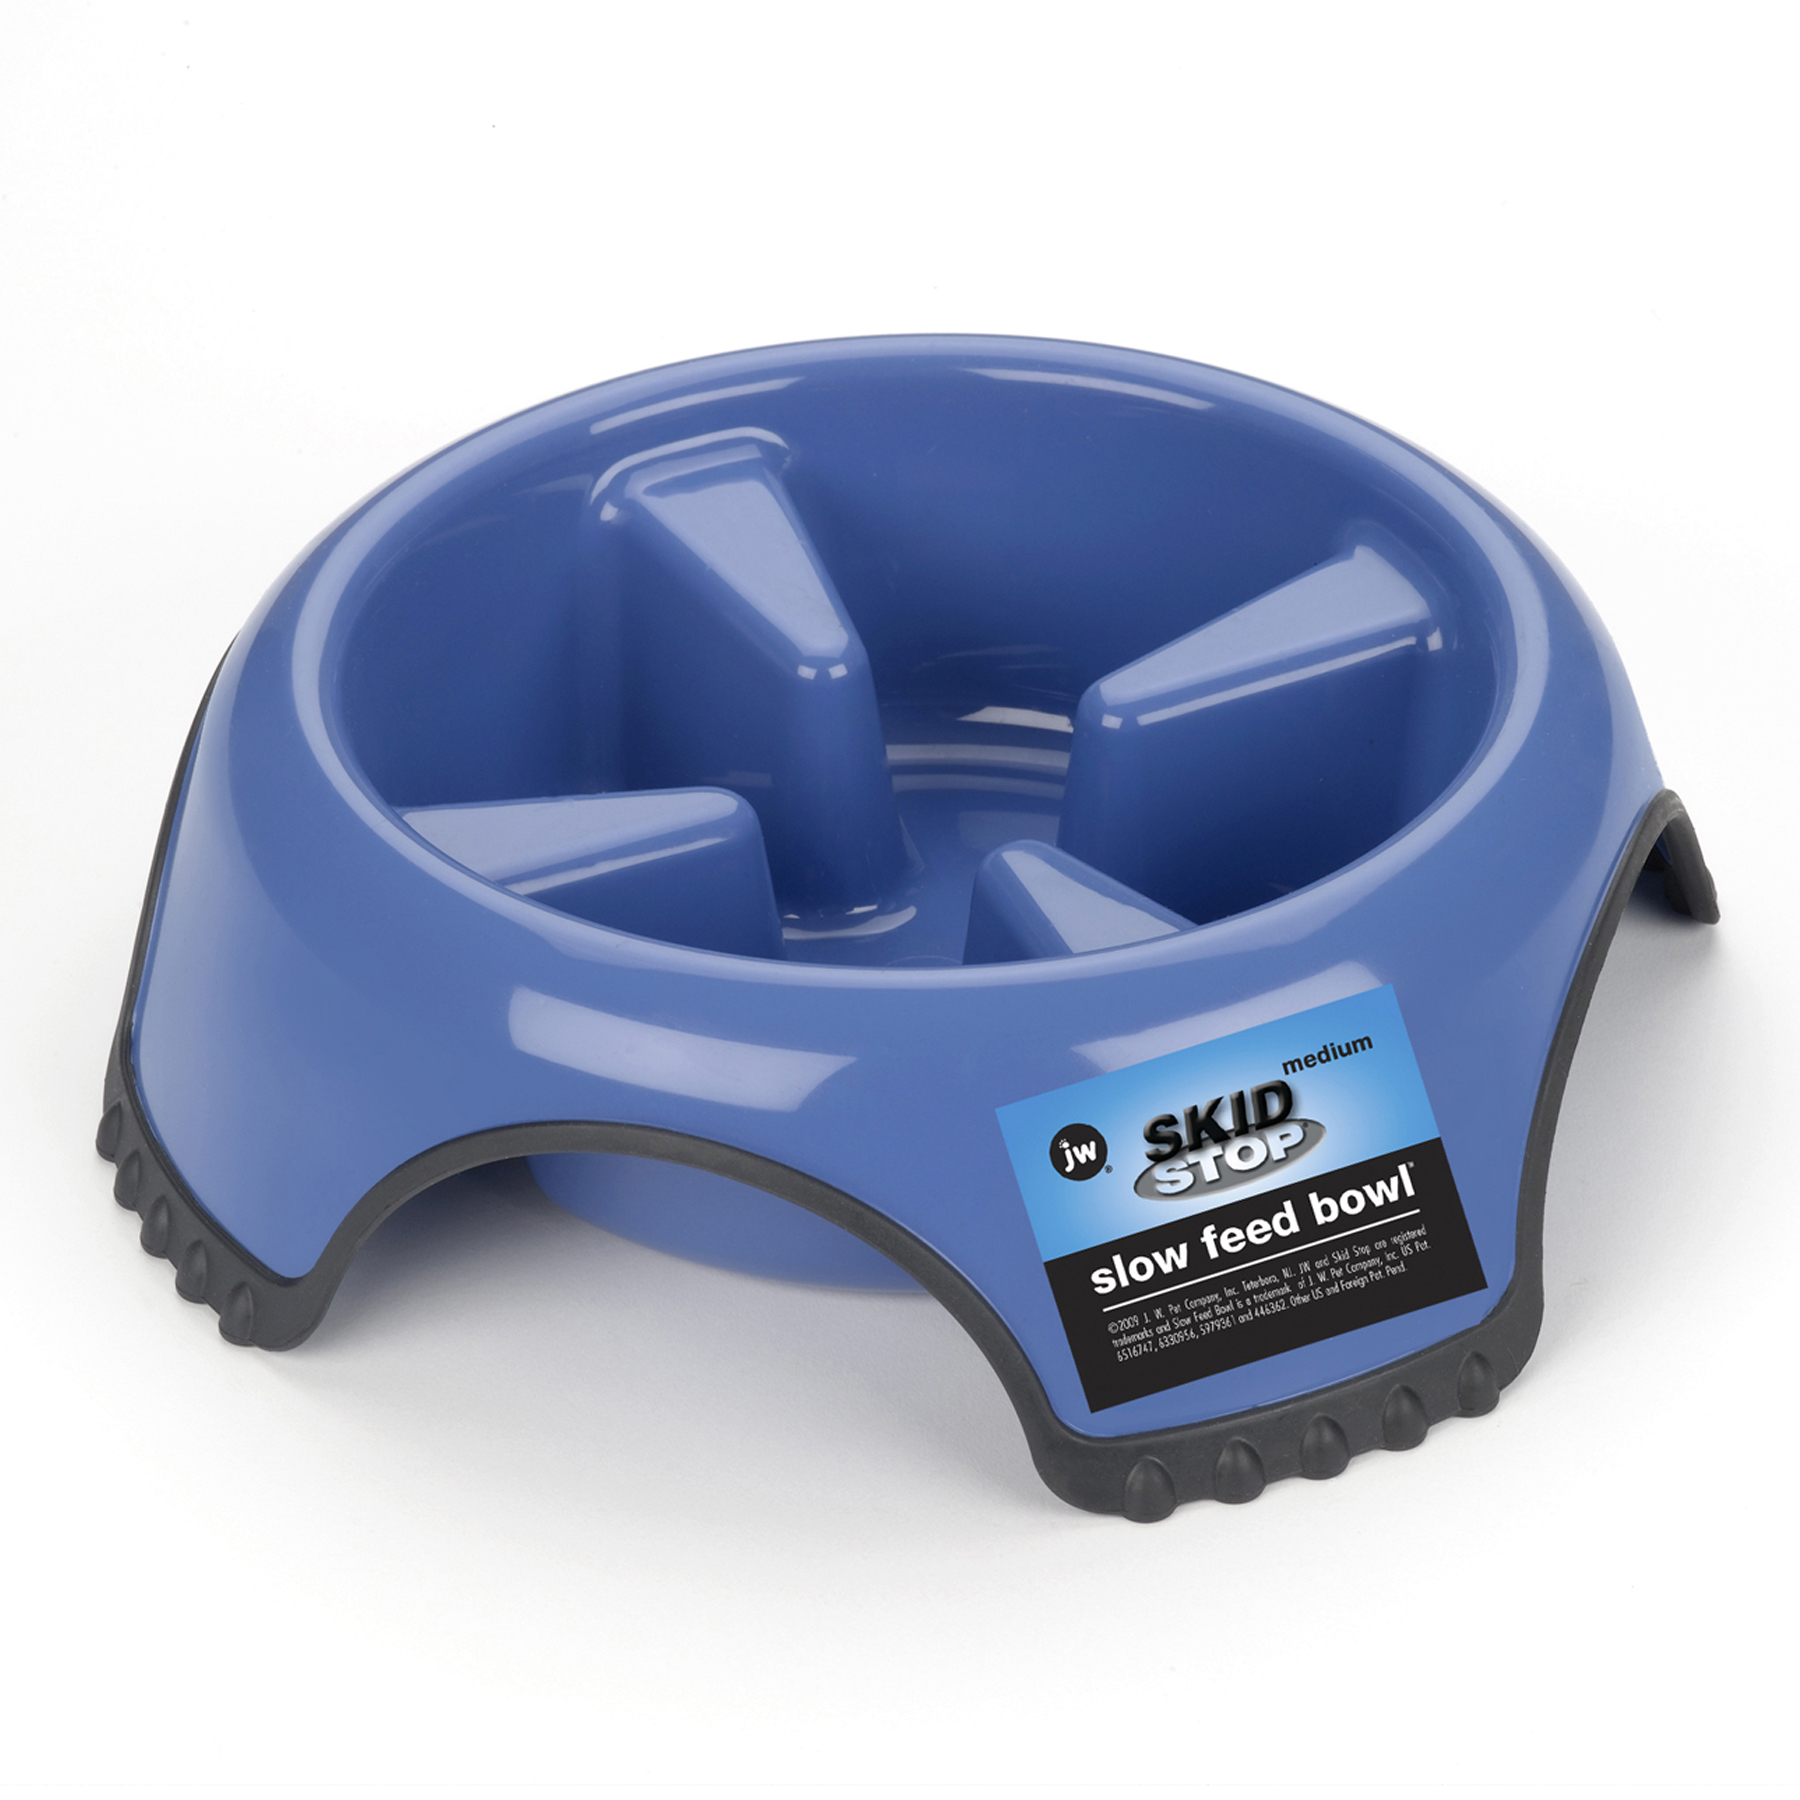 JW Pet Skid Stop Slow Feed Bowl, Medium